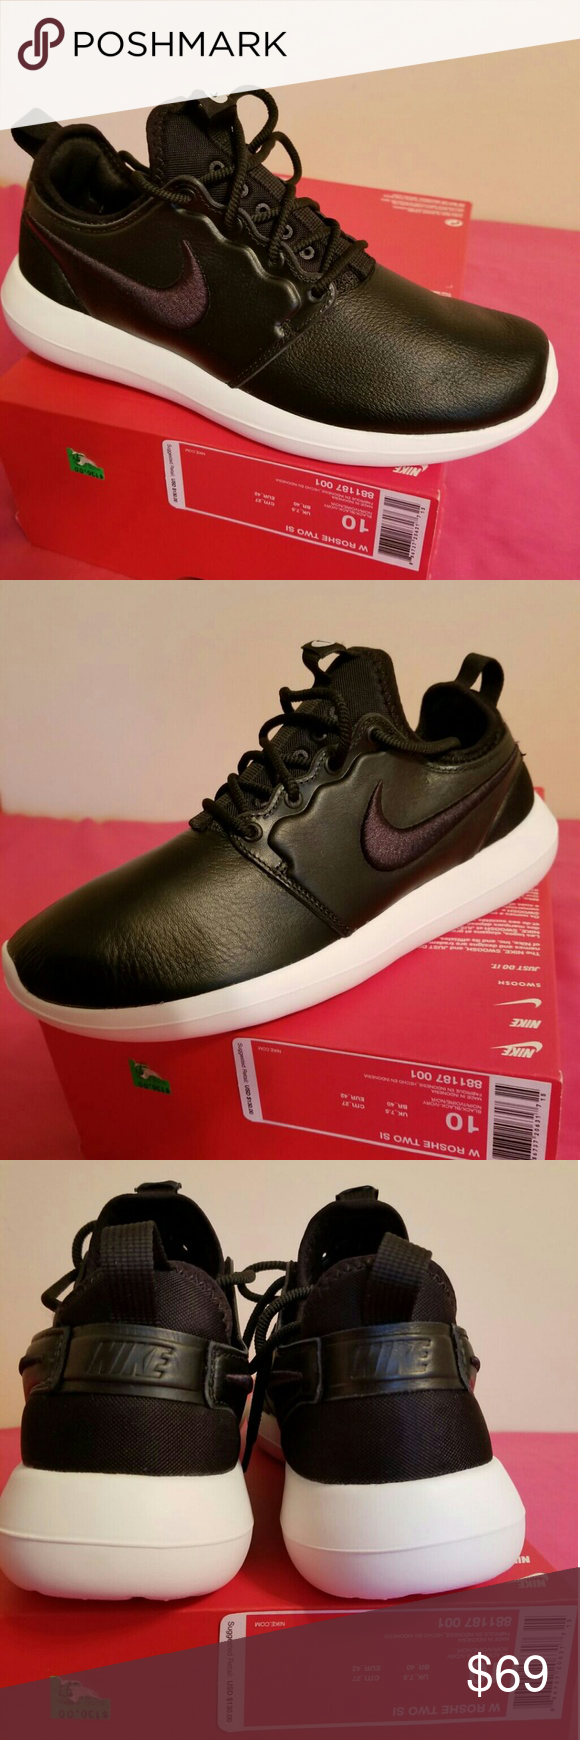 e850b3e242be New Nike Roshe 2 SI Blk Size 10 WOMEN   8 Men This Newest Nike Roshe ...